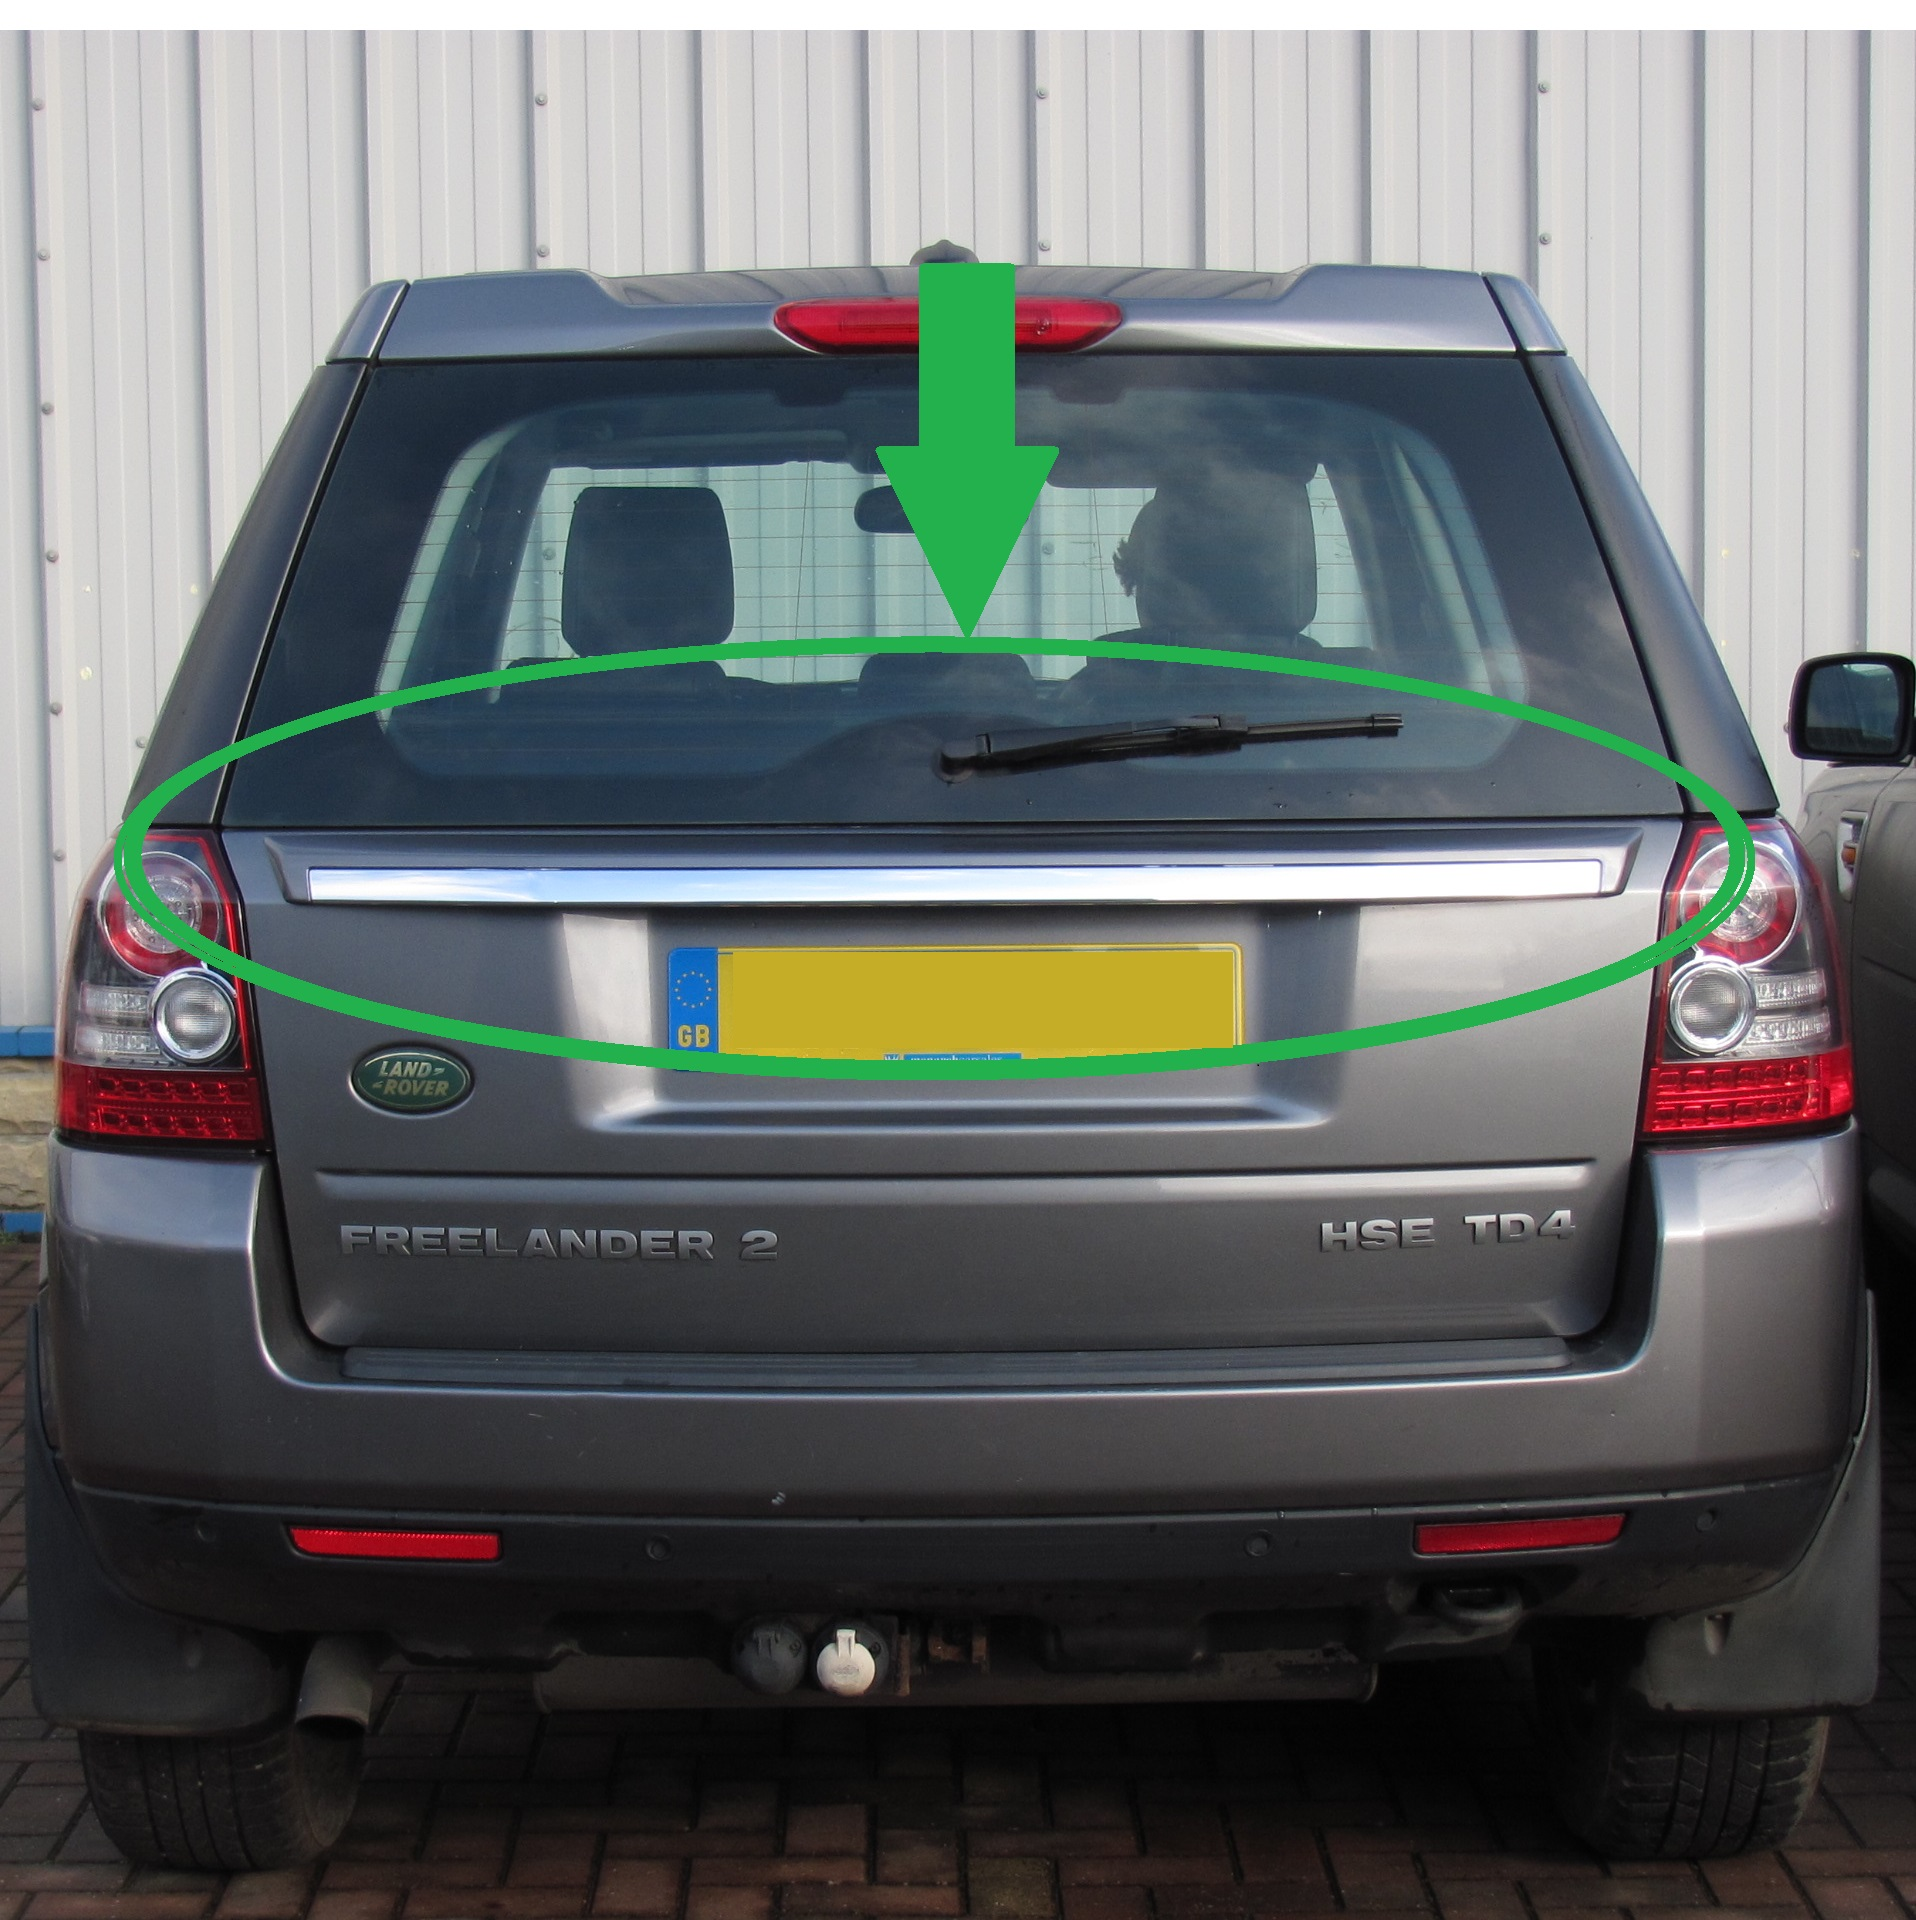 Details about 2012 style rear tailgate upgrade trim panel conversion for  Land Rover Freelander